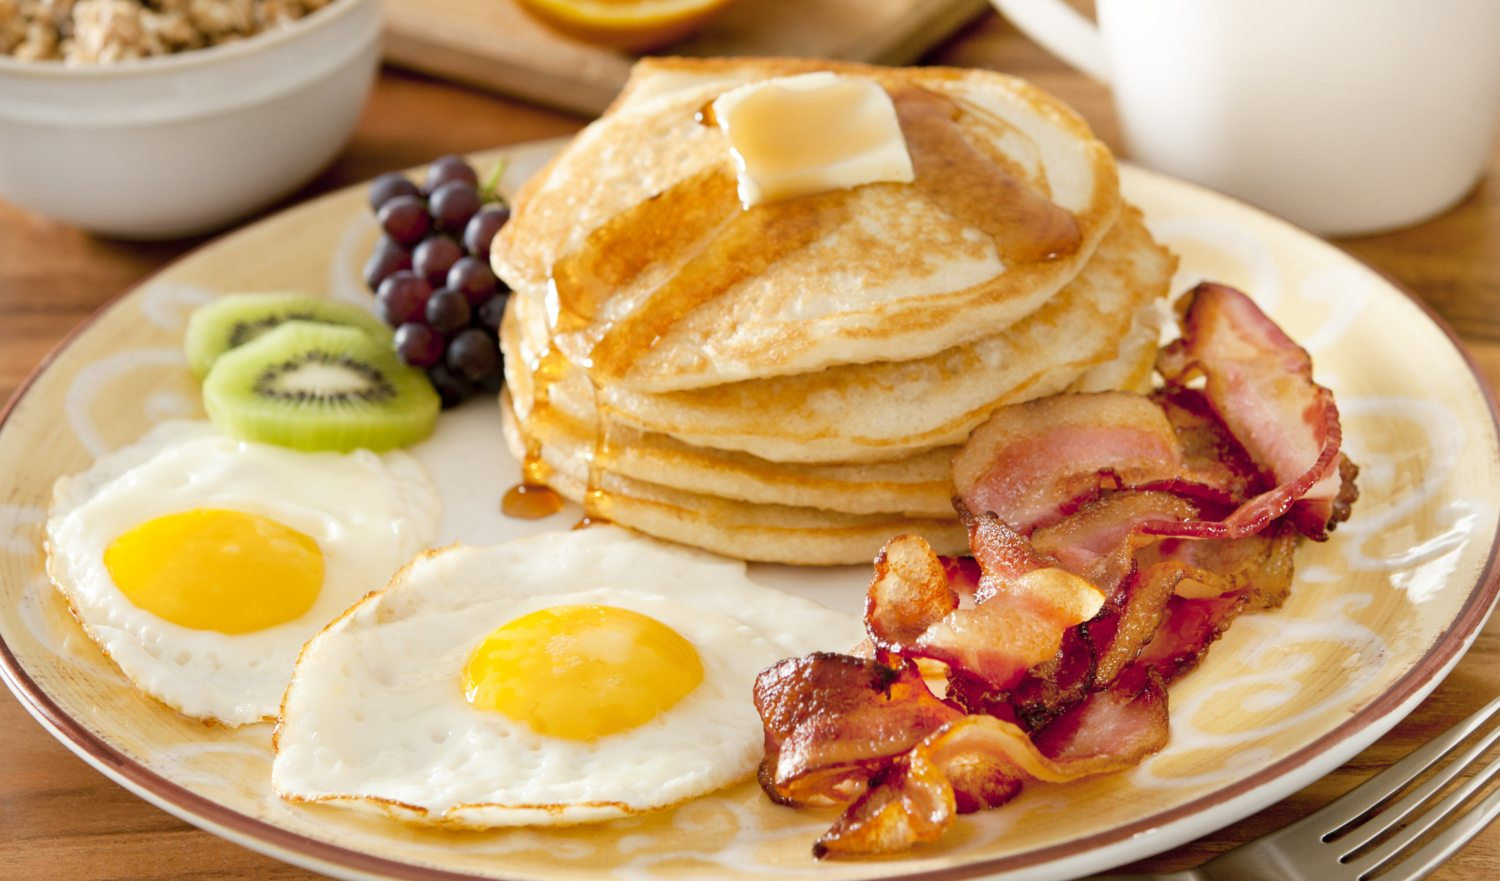 """Closeup of a breakfast plate with pancakes, eggs, bacon and fruit.Related Images:"""